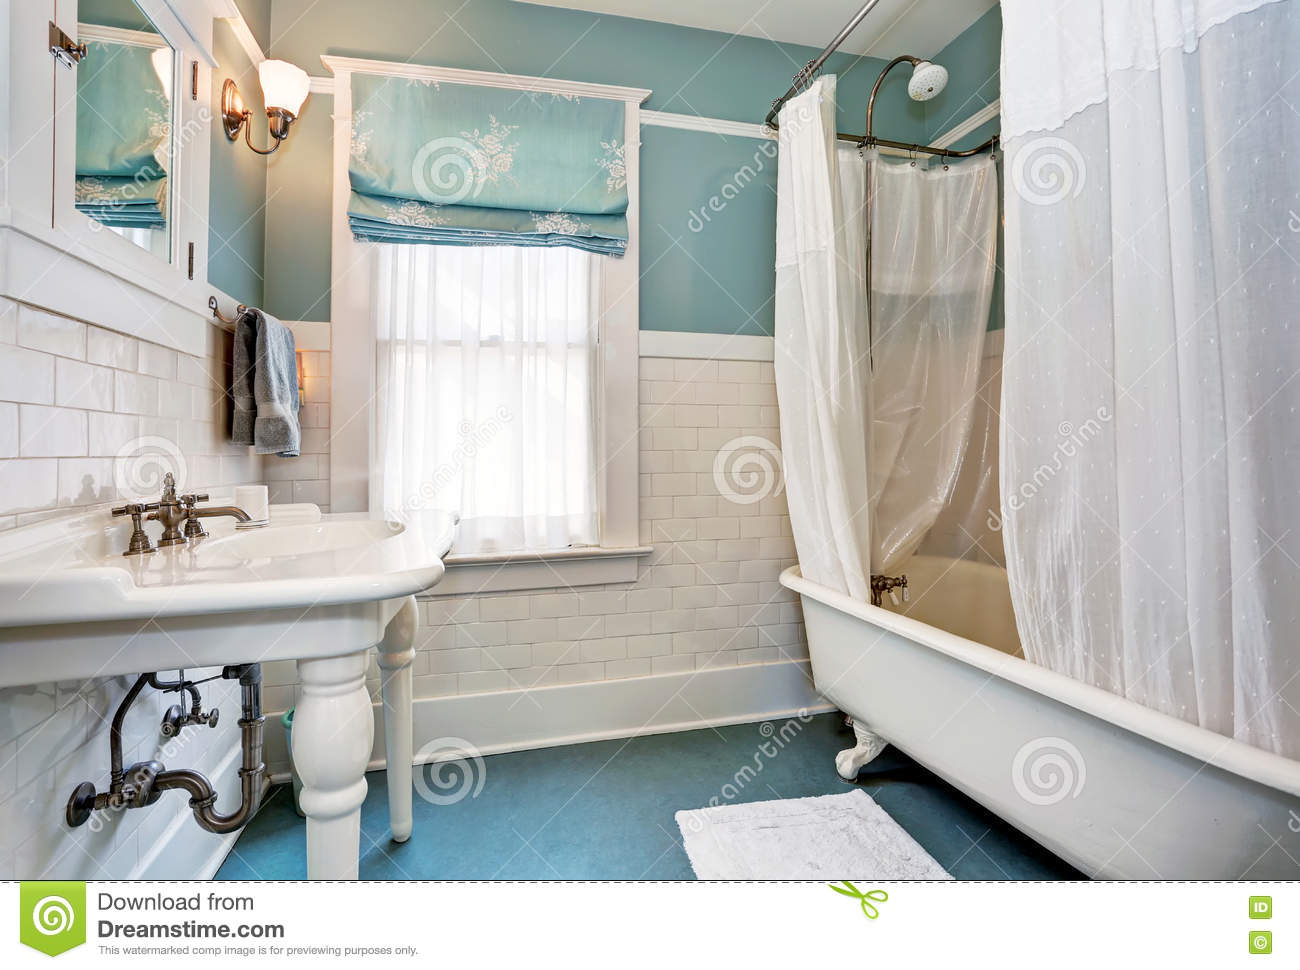 Blue Bathroom Interior With White Tile Trim Wall, White Sink And ...